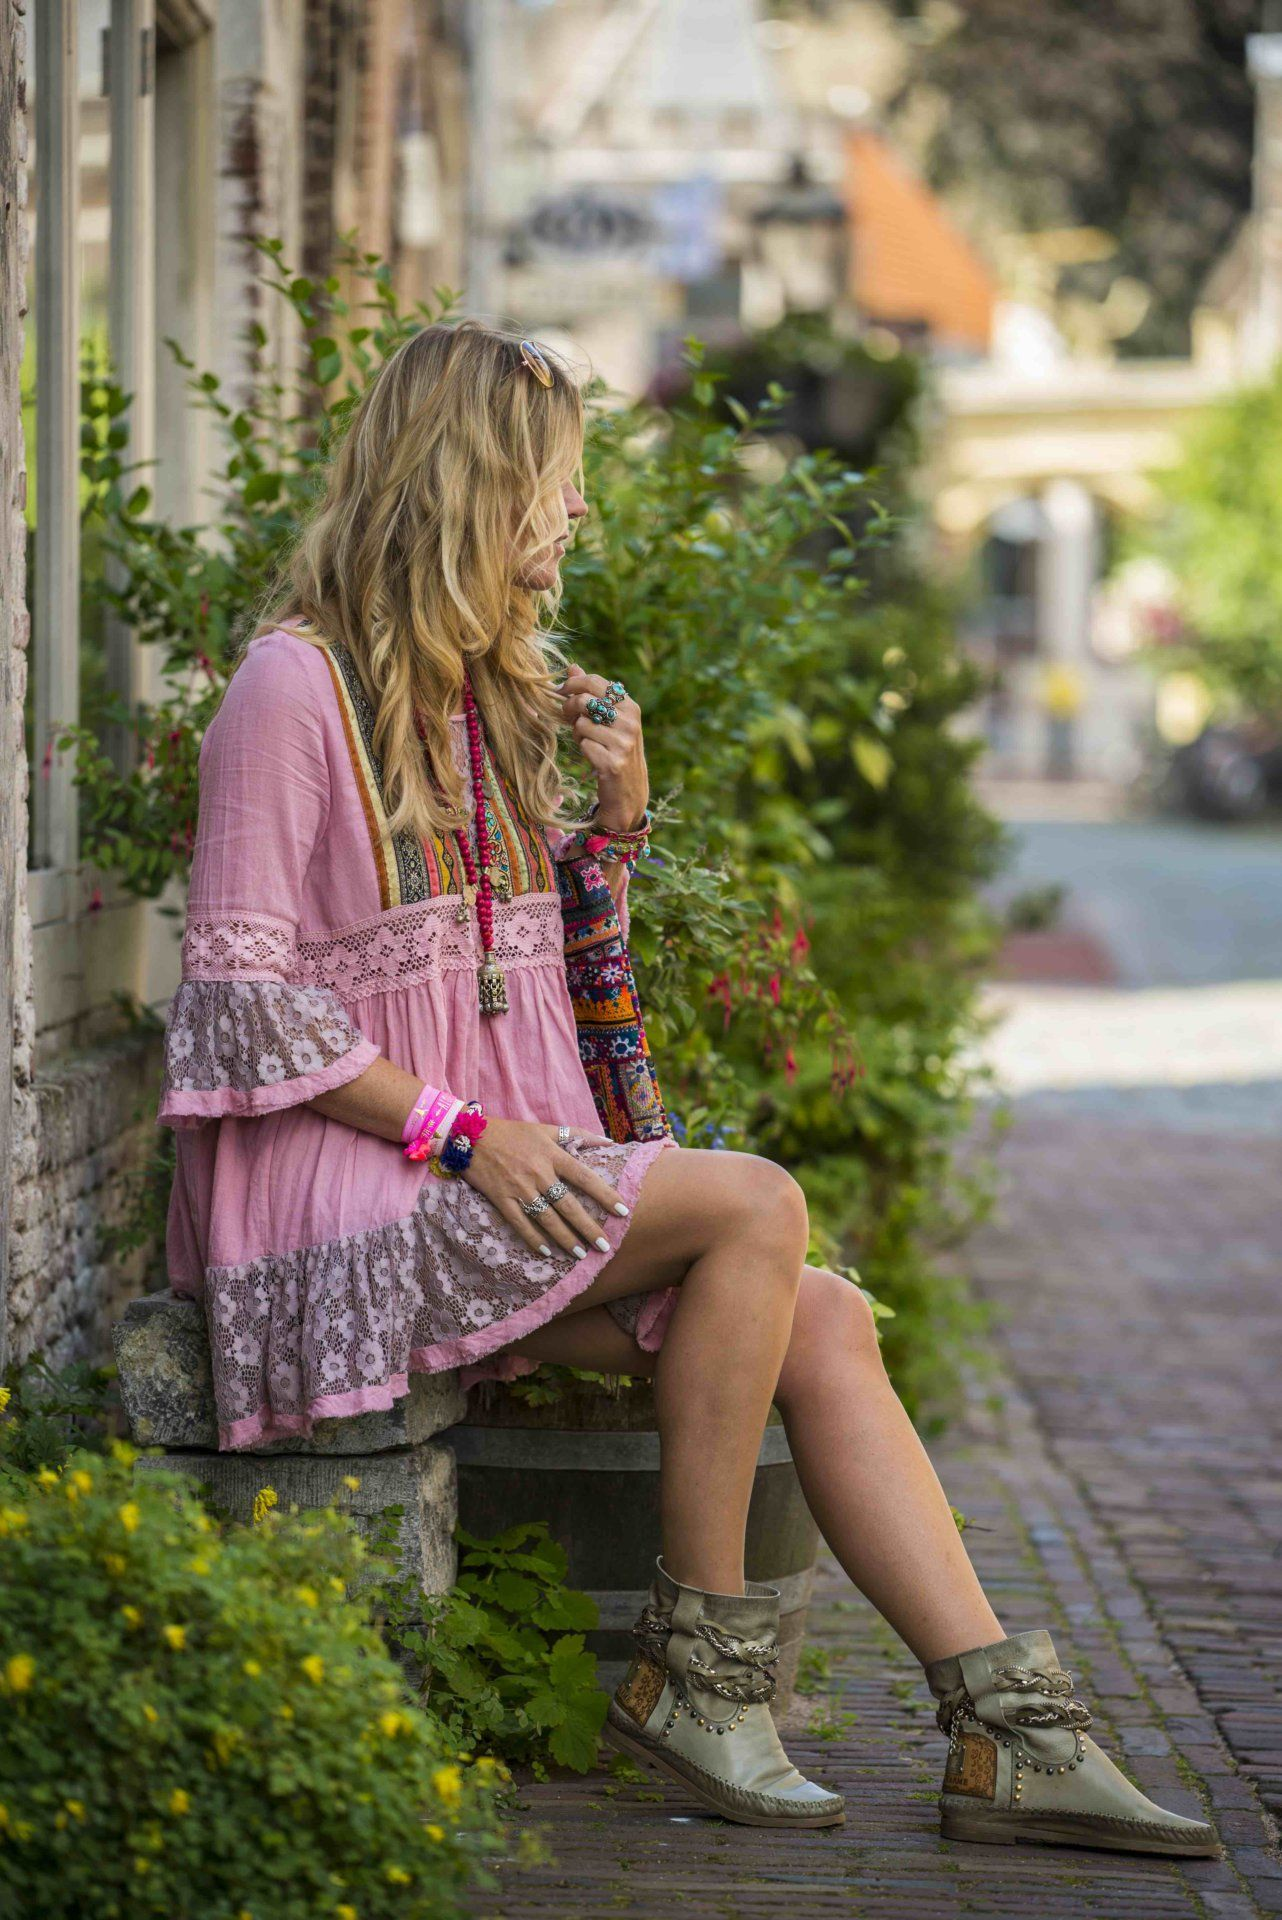 The perfect hippie chic style for a hot summer day in the city ...